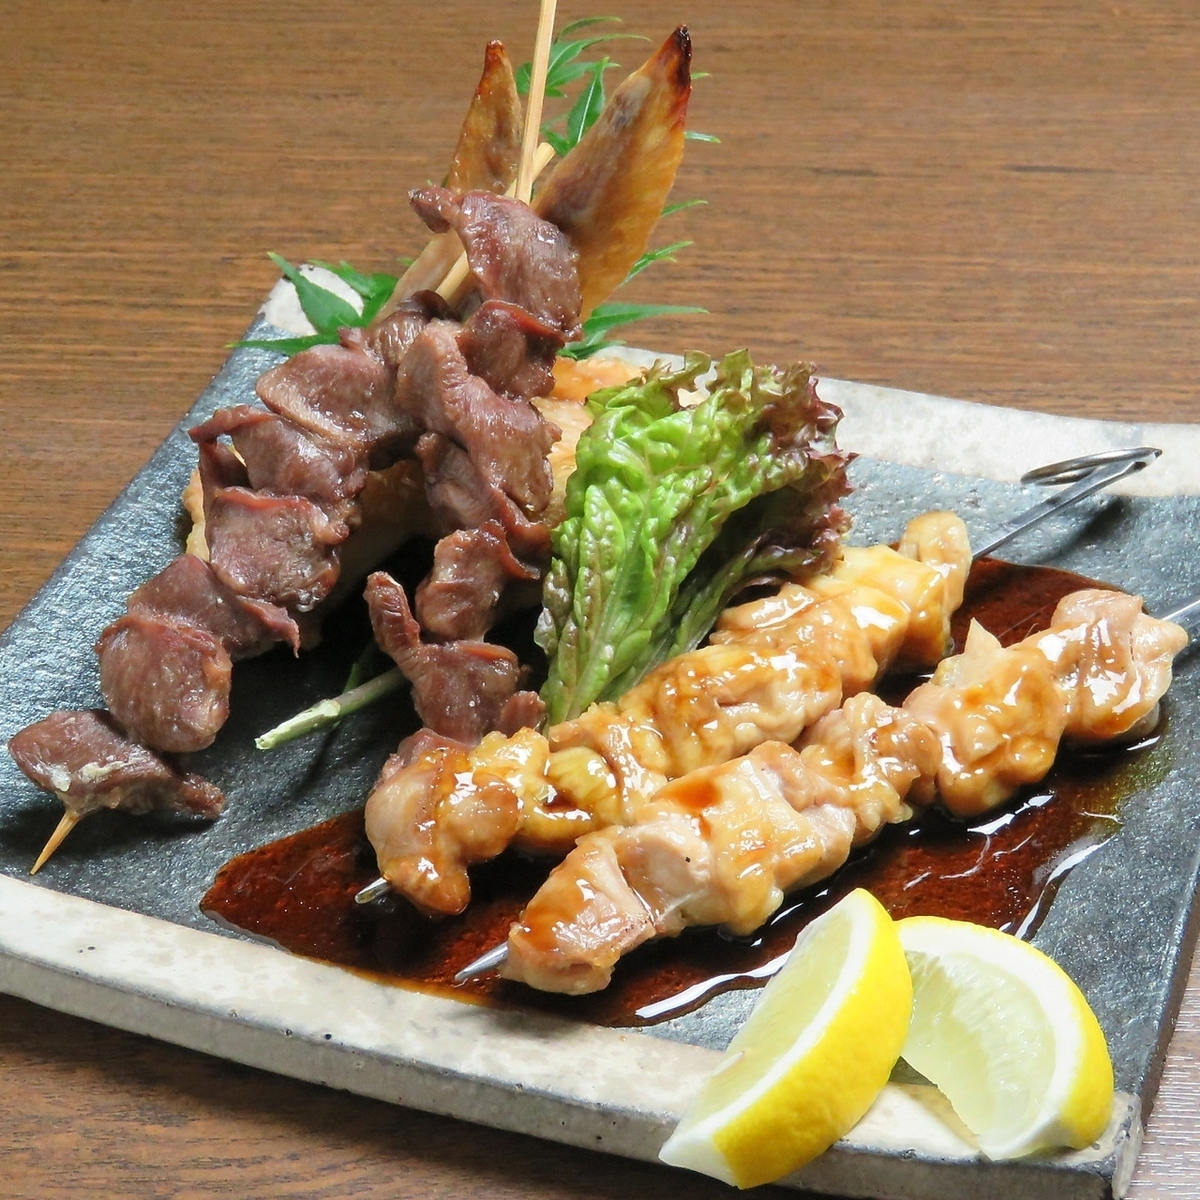 Assorted skewers (1 pea, 1 slurry, 2 wings) ※ Pictures are images